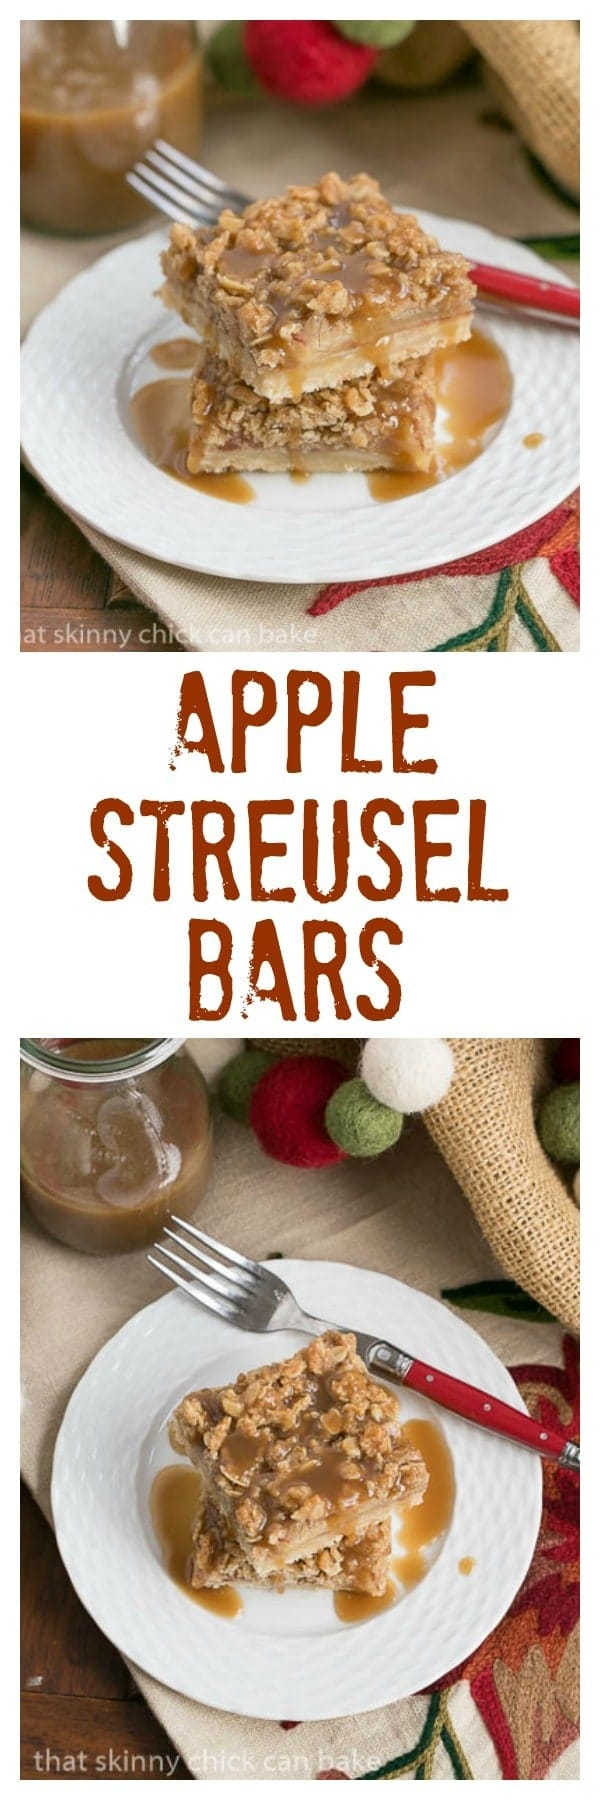 Caramel Apple Streusel Bars with a drizzle of caramel sauce